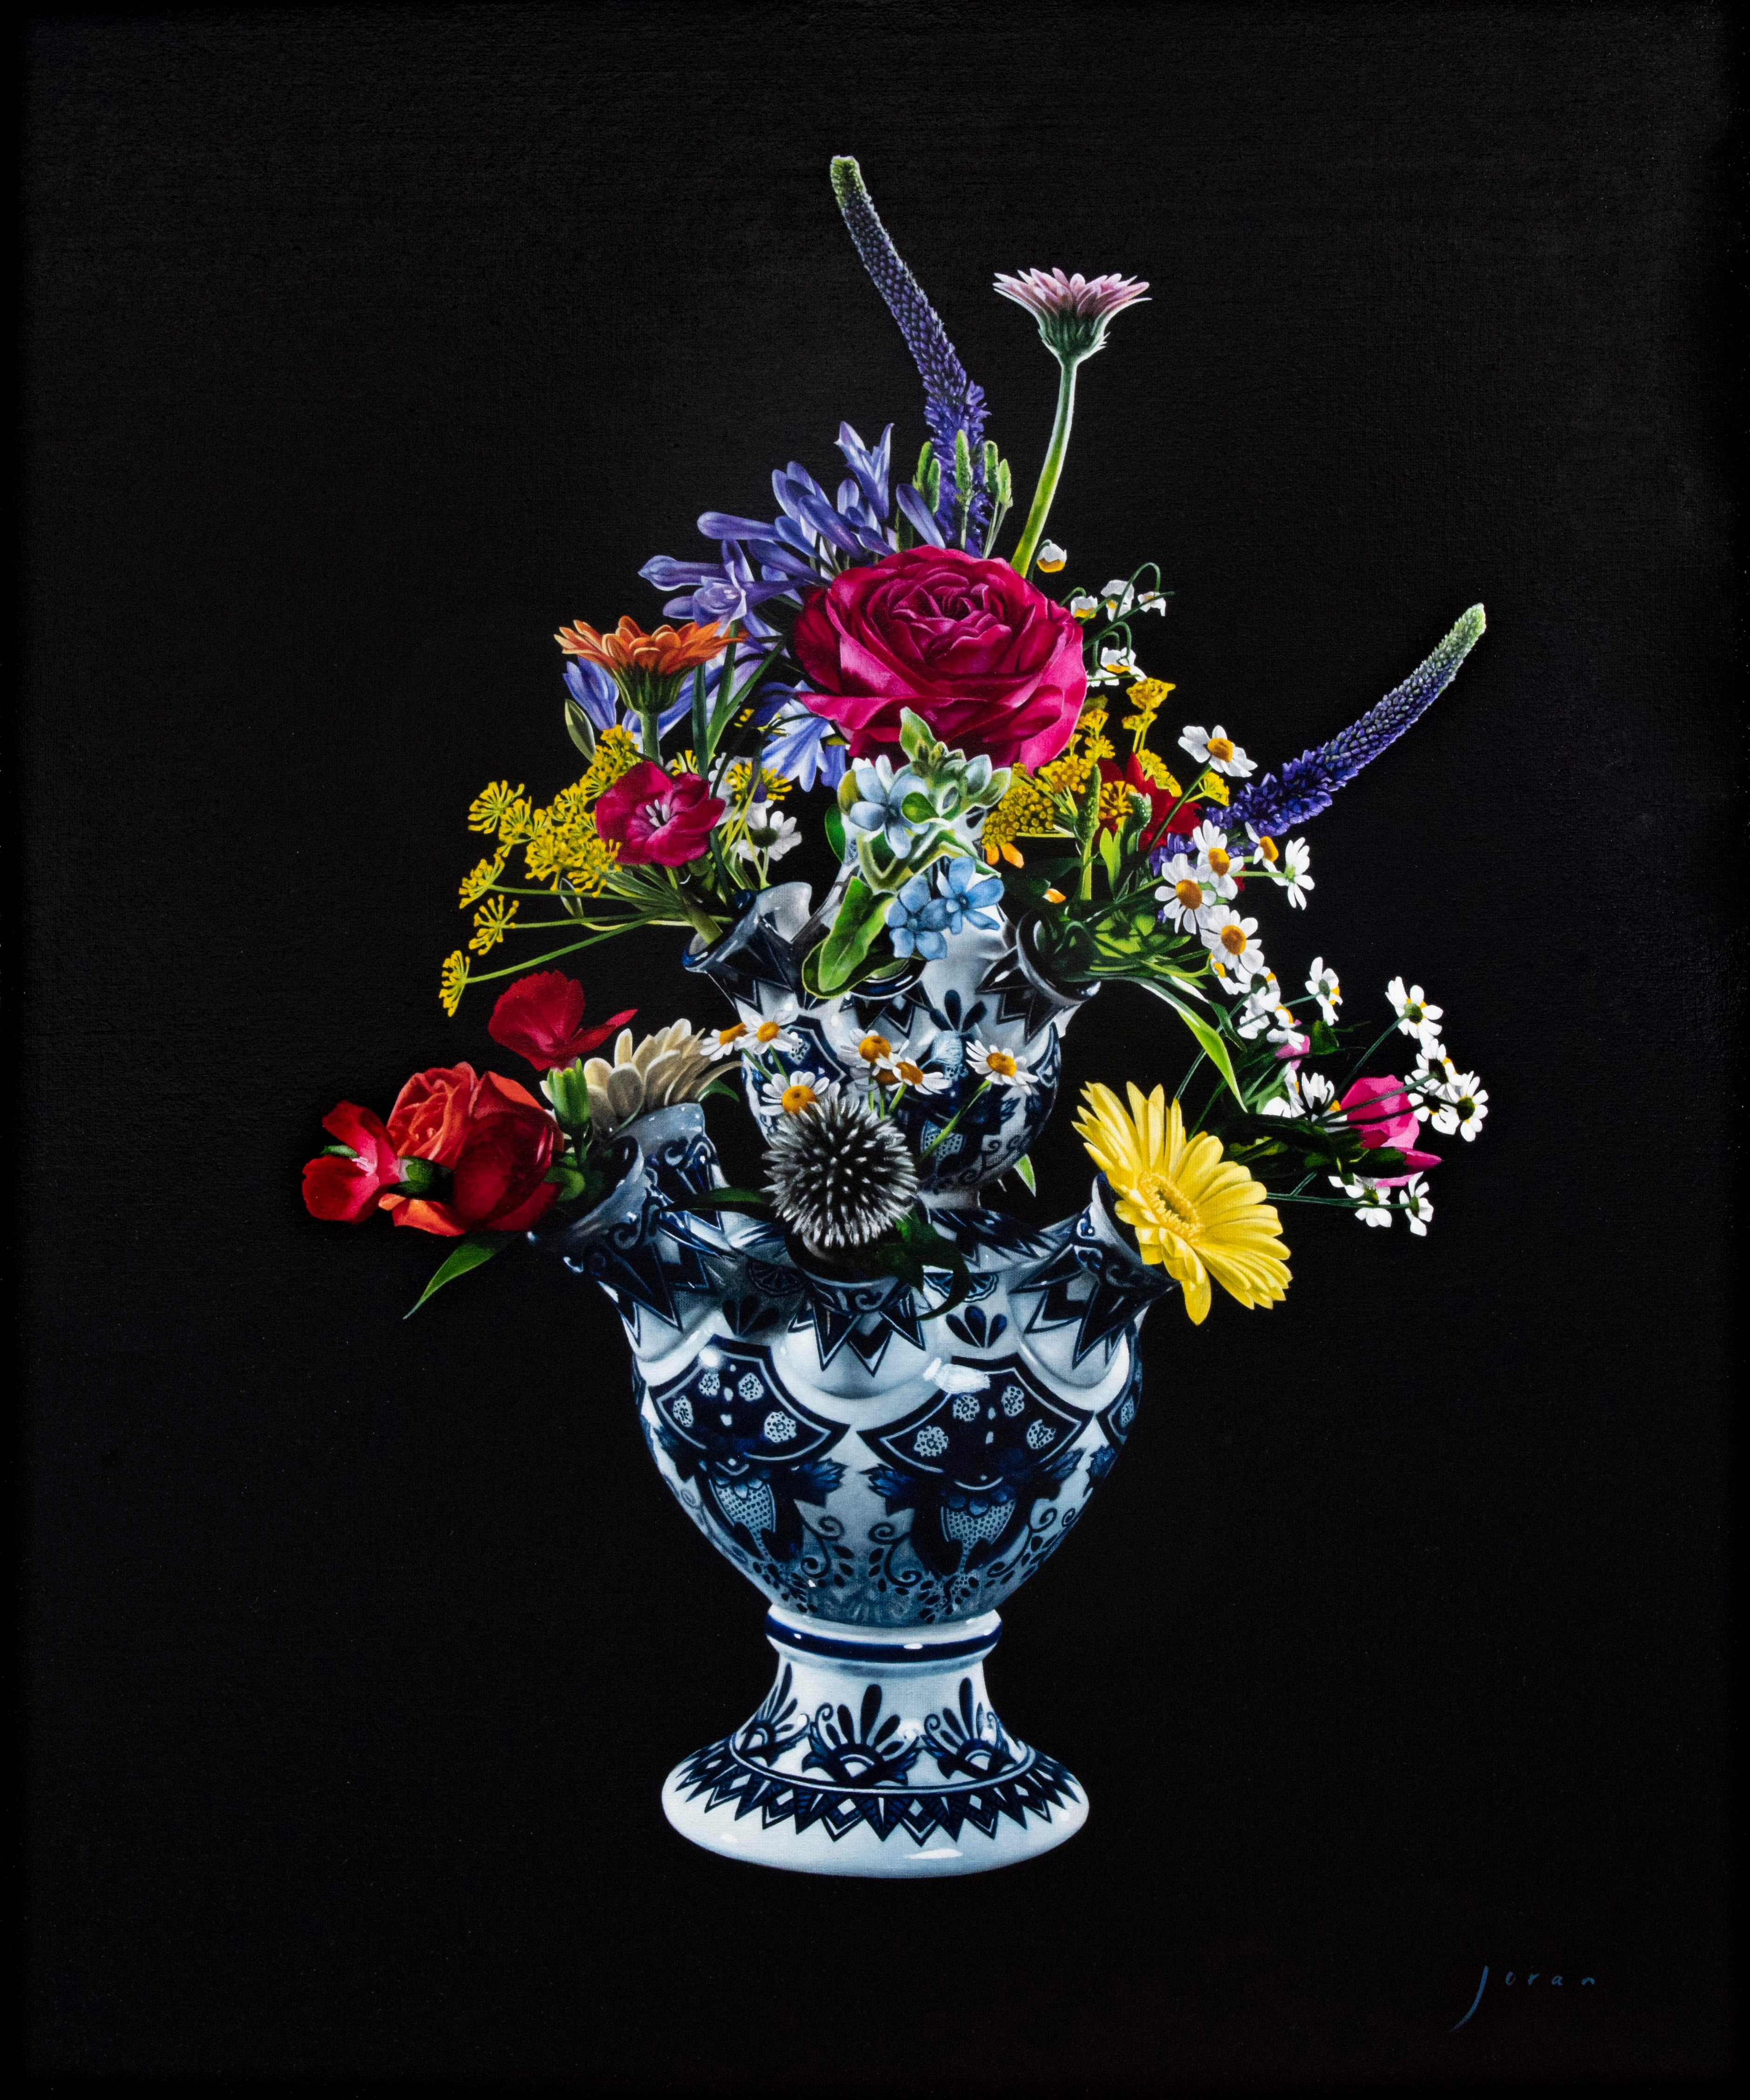 Flowers-21st Century  Realistic Still-life Painting of a Tulip vase with Flowers